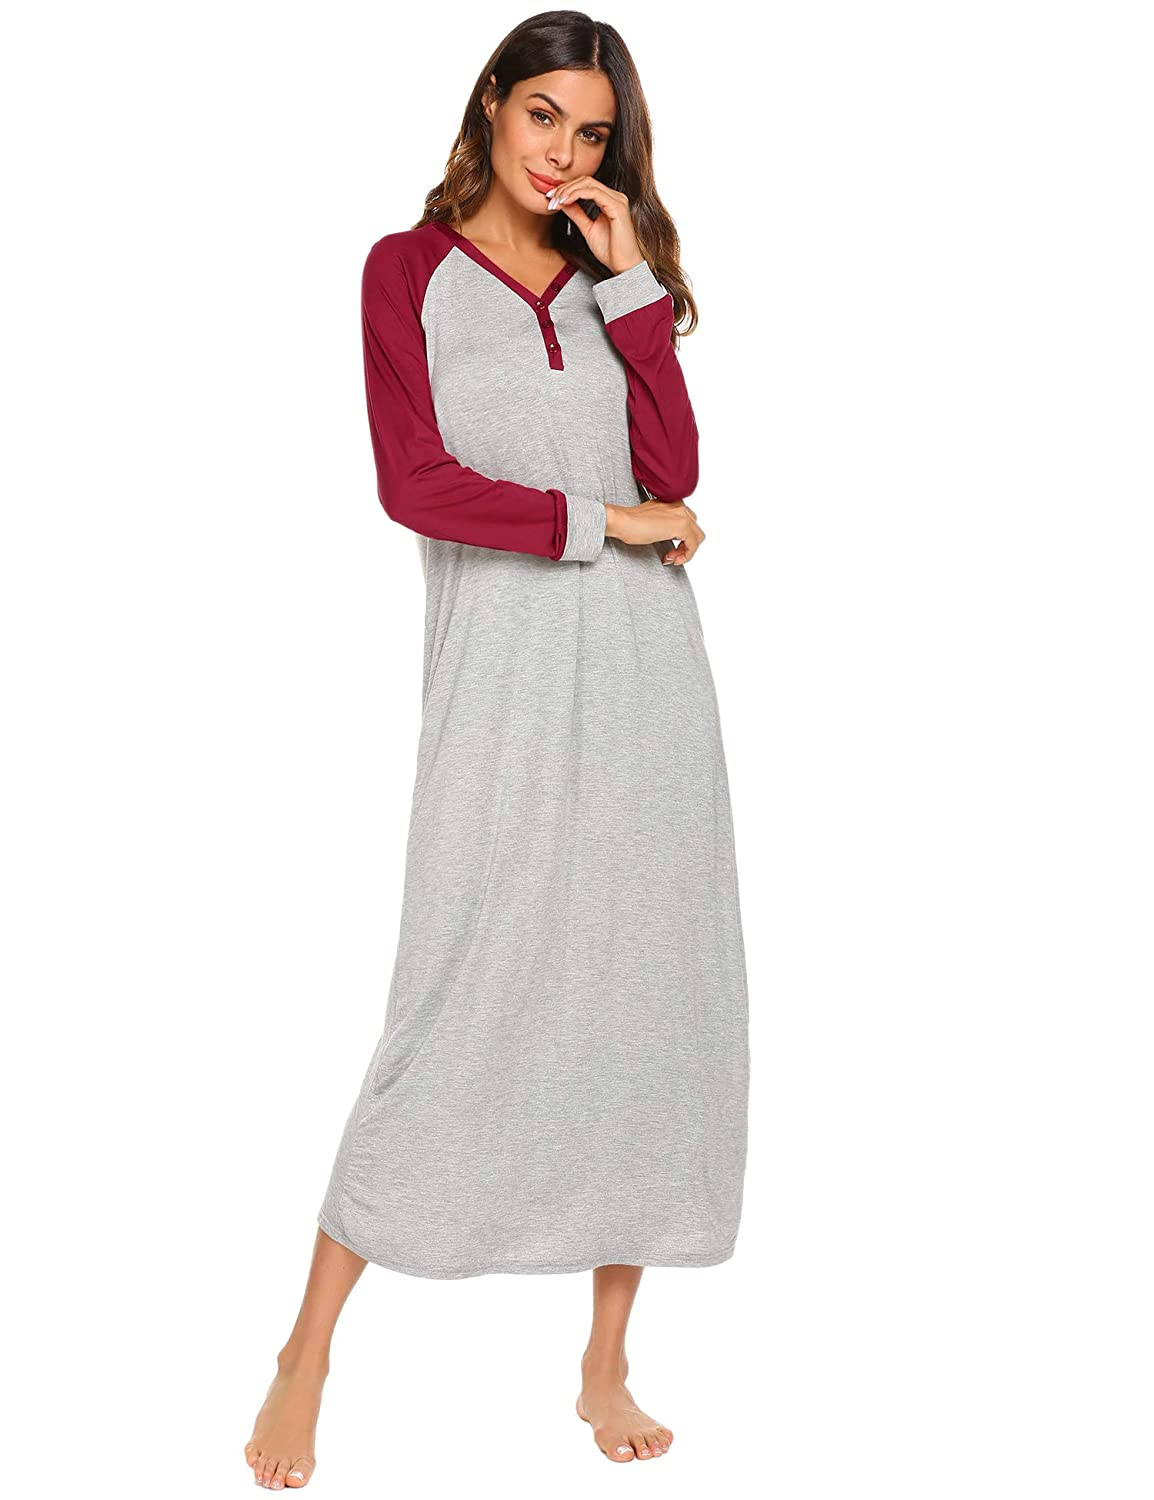 Ekouaer Sleep Shirt Women s Long Sleeve Sleepwear V-Neck Night Dress Nightgown  Loungewear S-XXL at Amazon Women s Clothing store  4f153d8e4